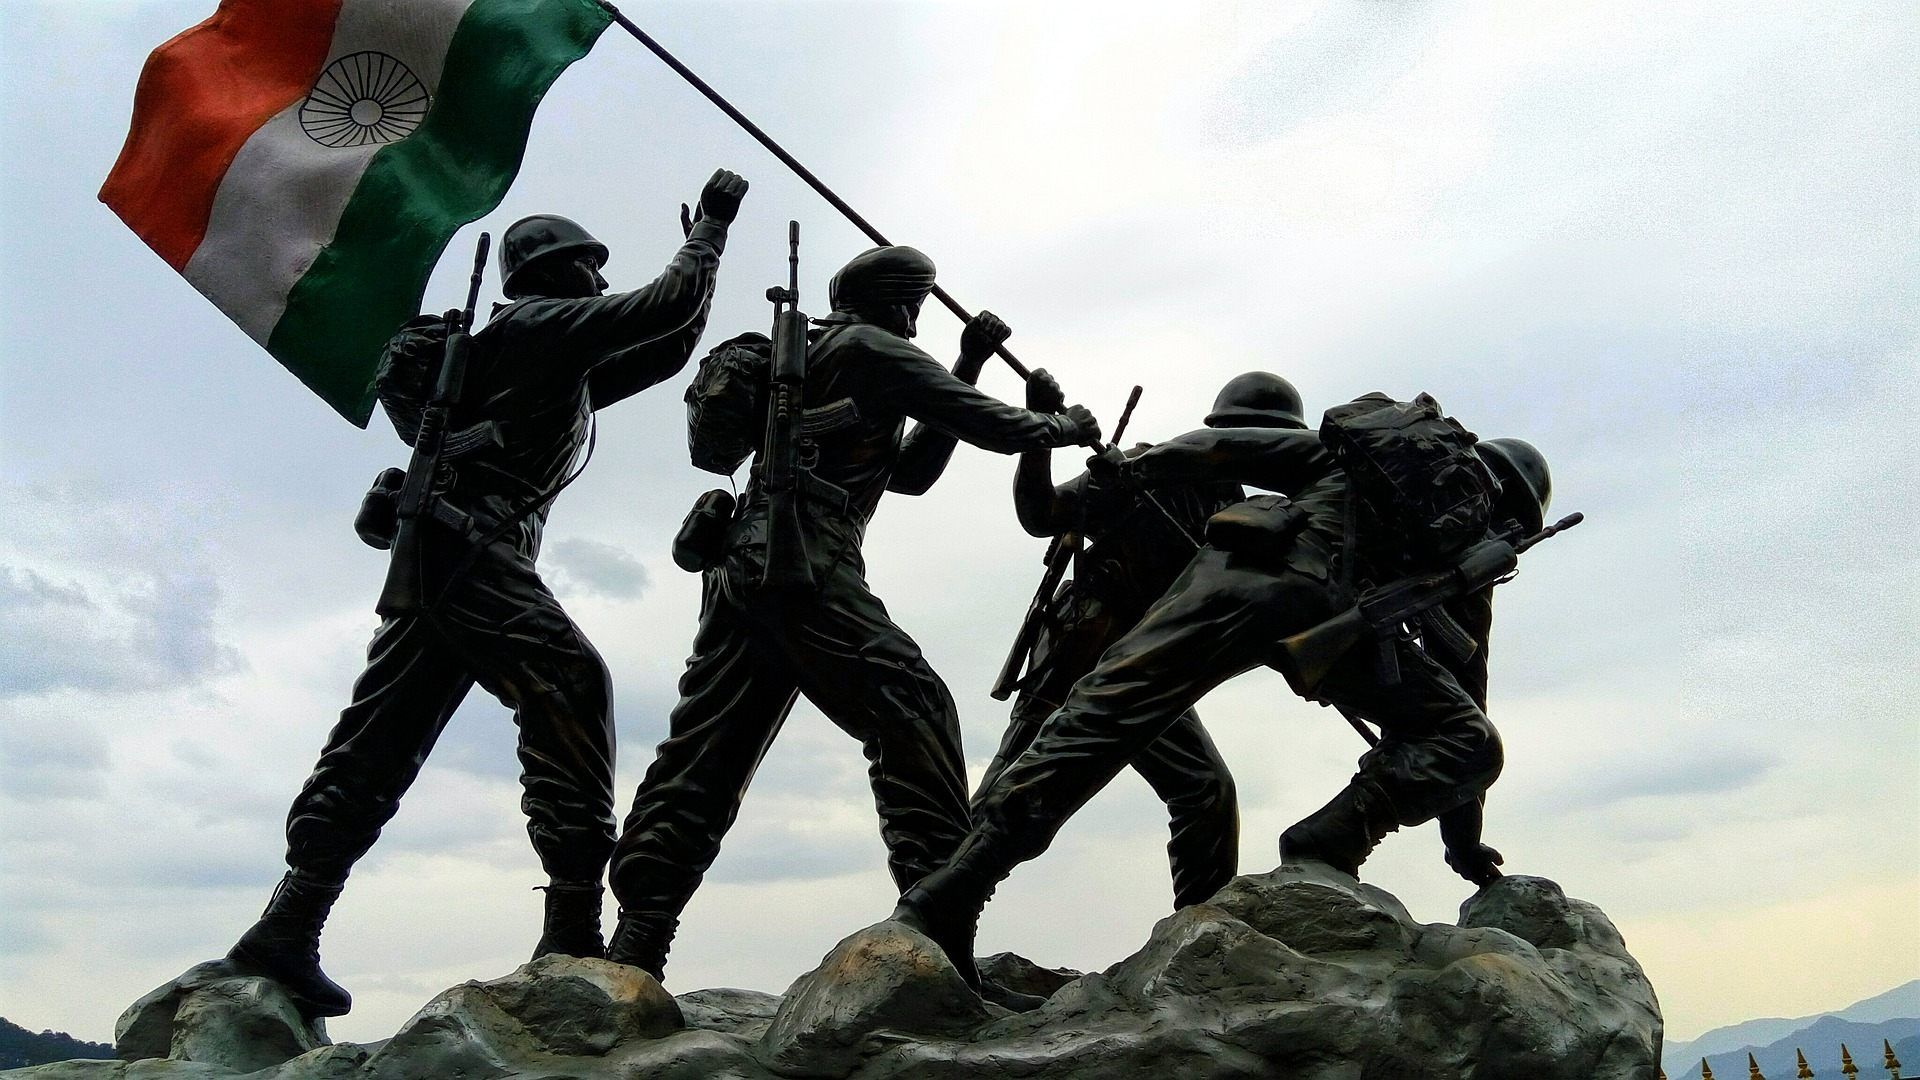 Indian Army Photos Hd Wallpaper Indian Army Wallpapers Hd Free